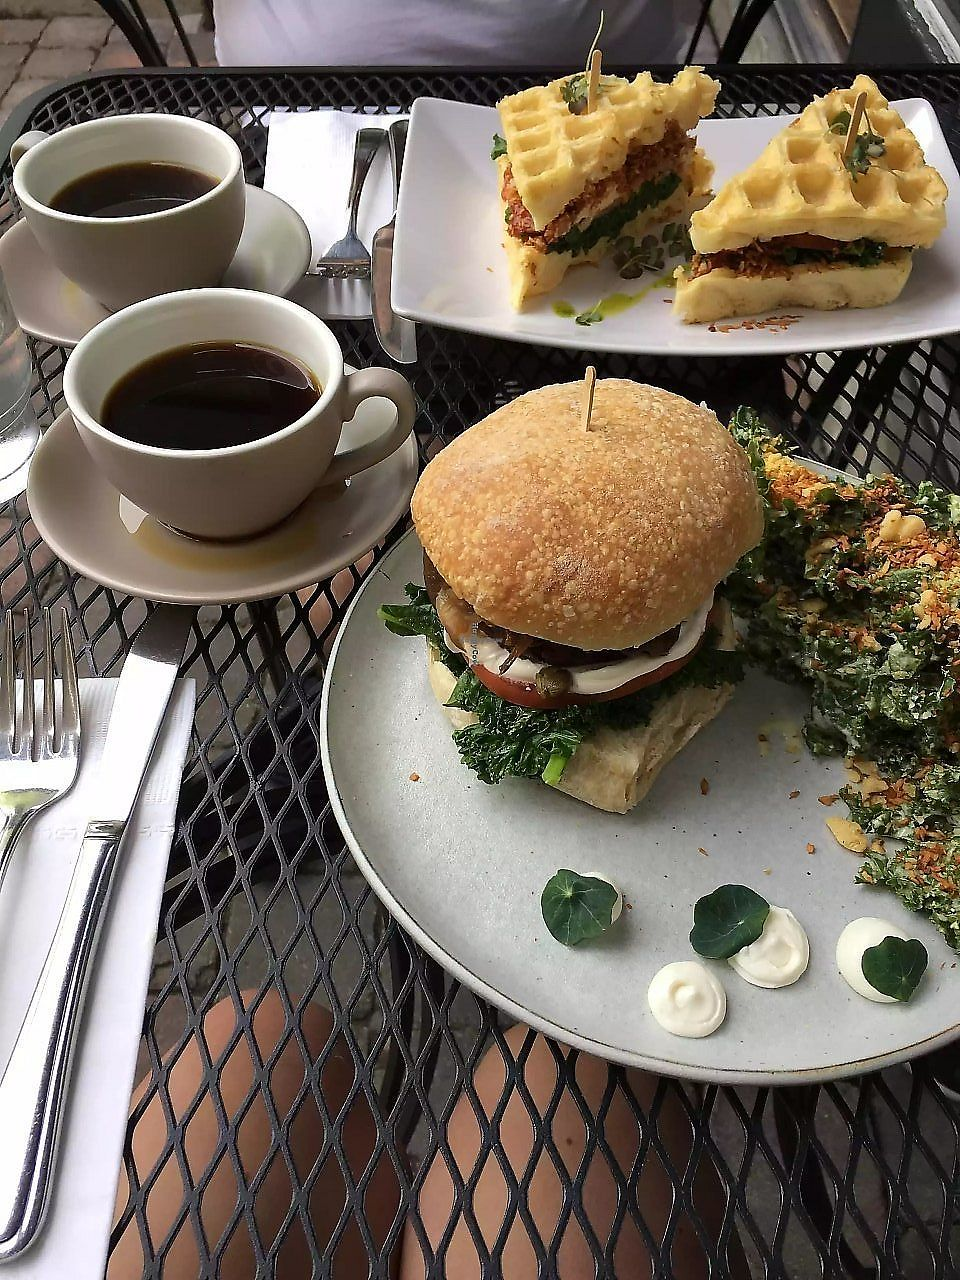 "Photo of Cafe My House  by <a href=""/members/profile/KellyAnnWhite"">KellyAnnWhite</a> <br/>Burger and chipotle bacon waffle sandwich  <br/> March 16, 2018  - <a href='/contact/abuse/image/21643/371181'>Report</a>"